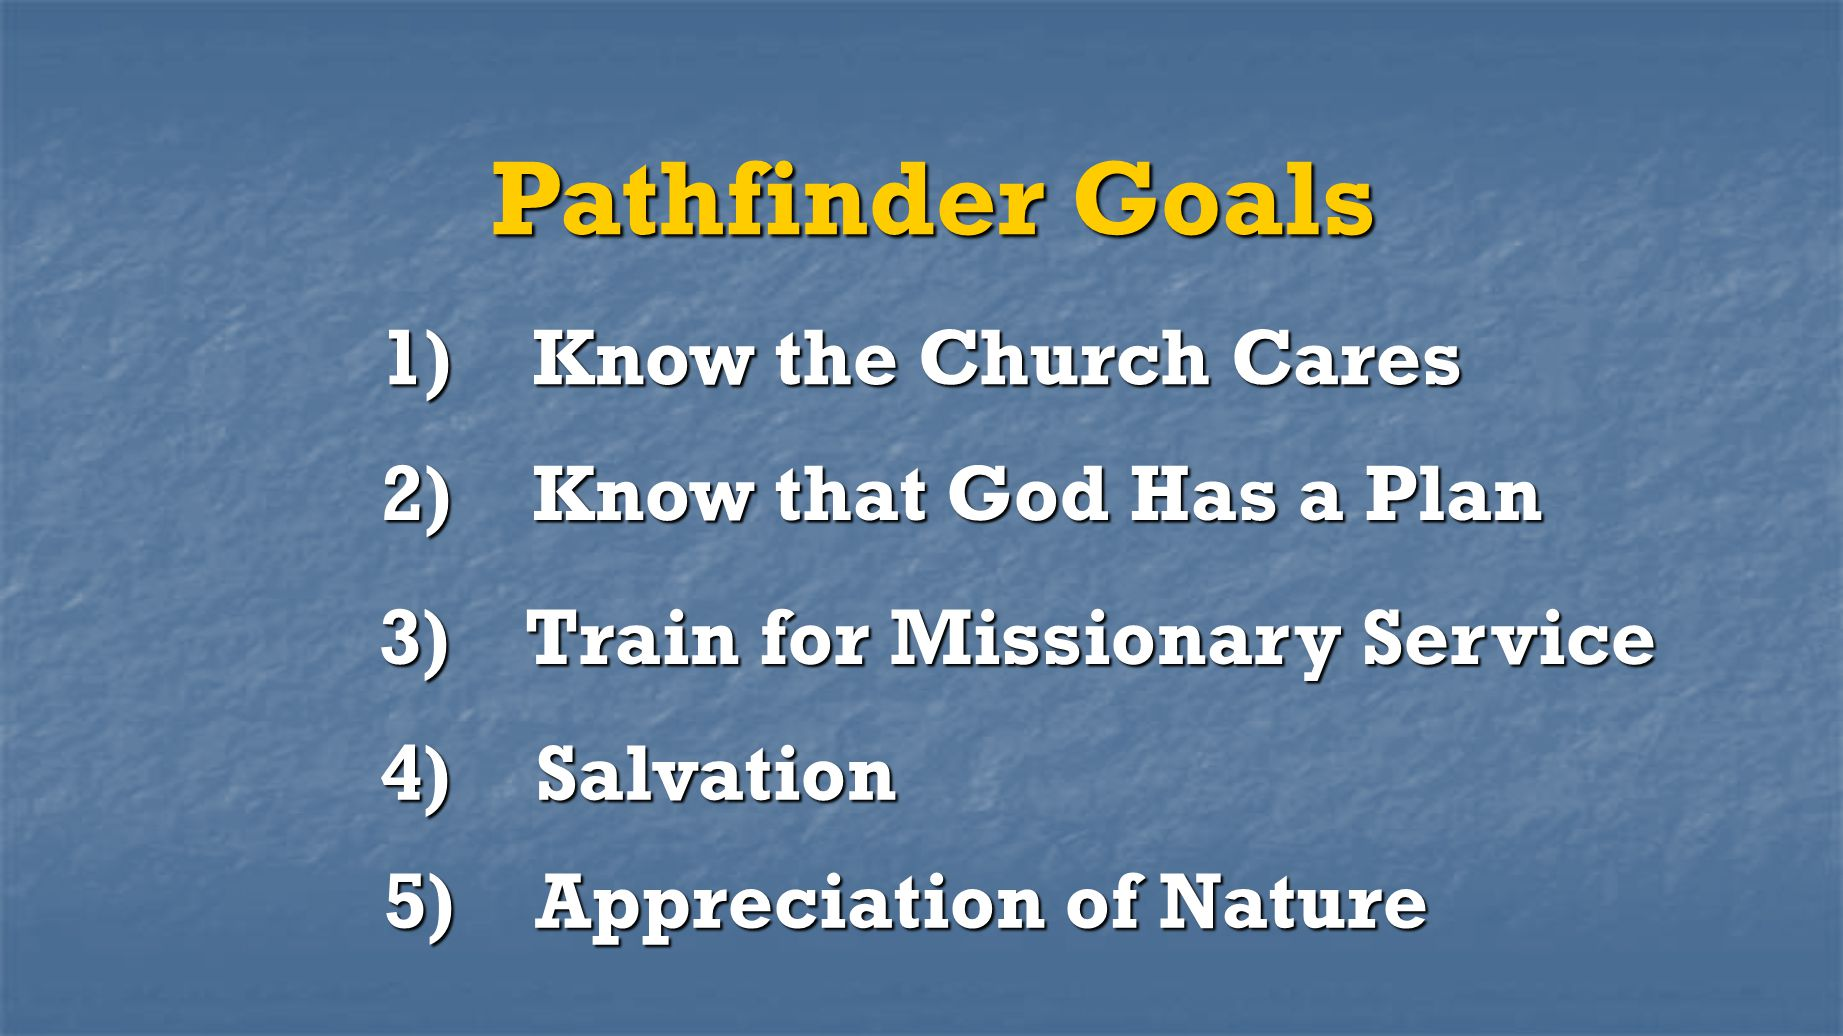 Pathfinder Goals 1) Know the Church Cares 2) Know that God Has a Plan 3) Train for Missionary Service 4) Salvation 5) Appreciation of Nature